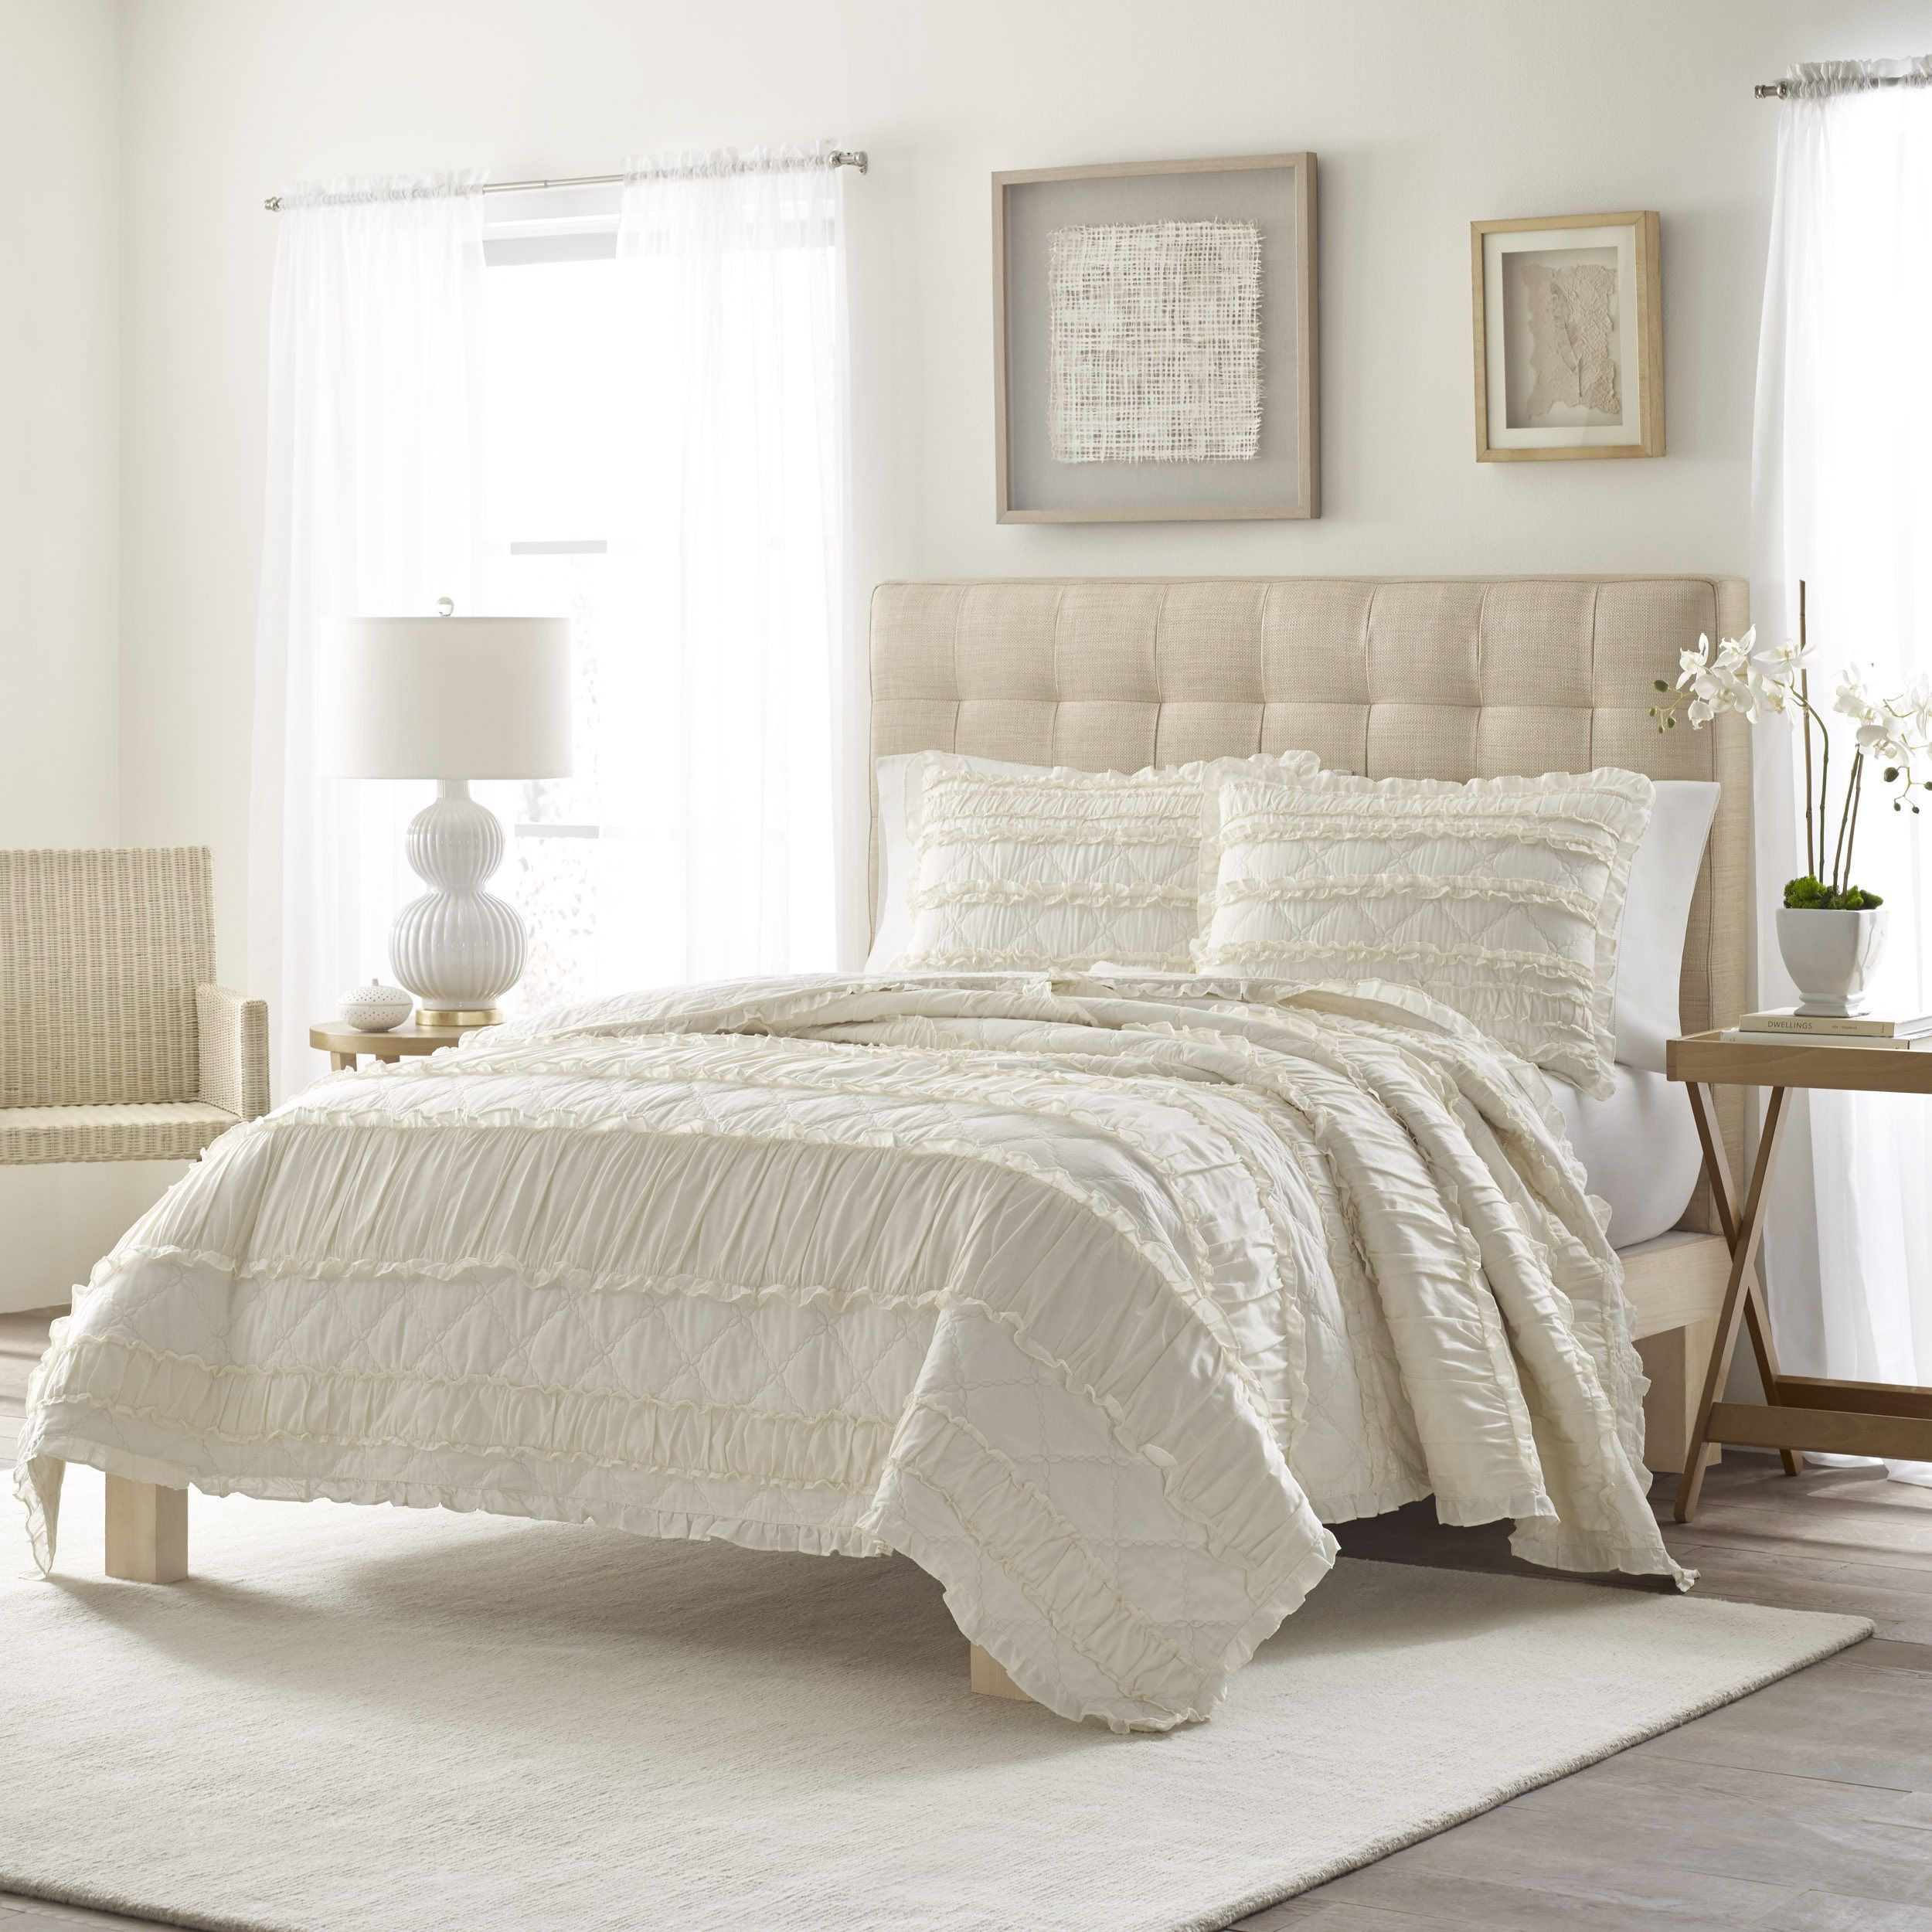 Stone Cottage Ivory Ruffled Cotton Quilt Set (King)